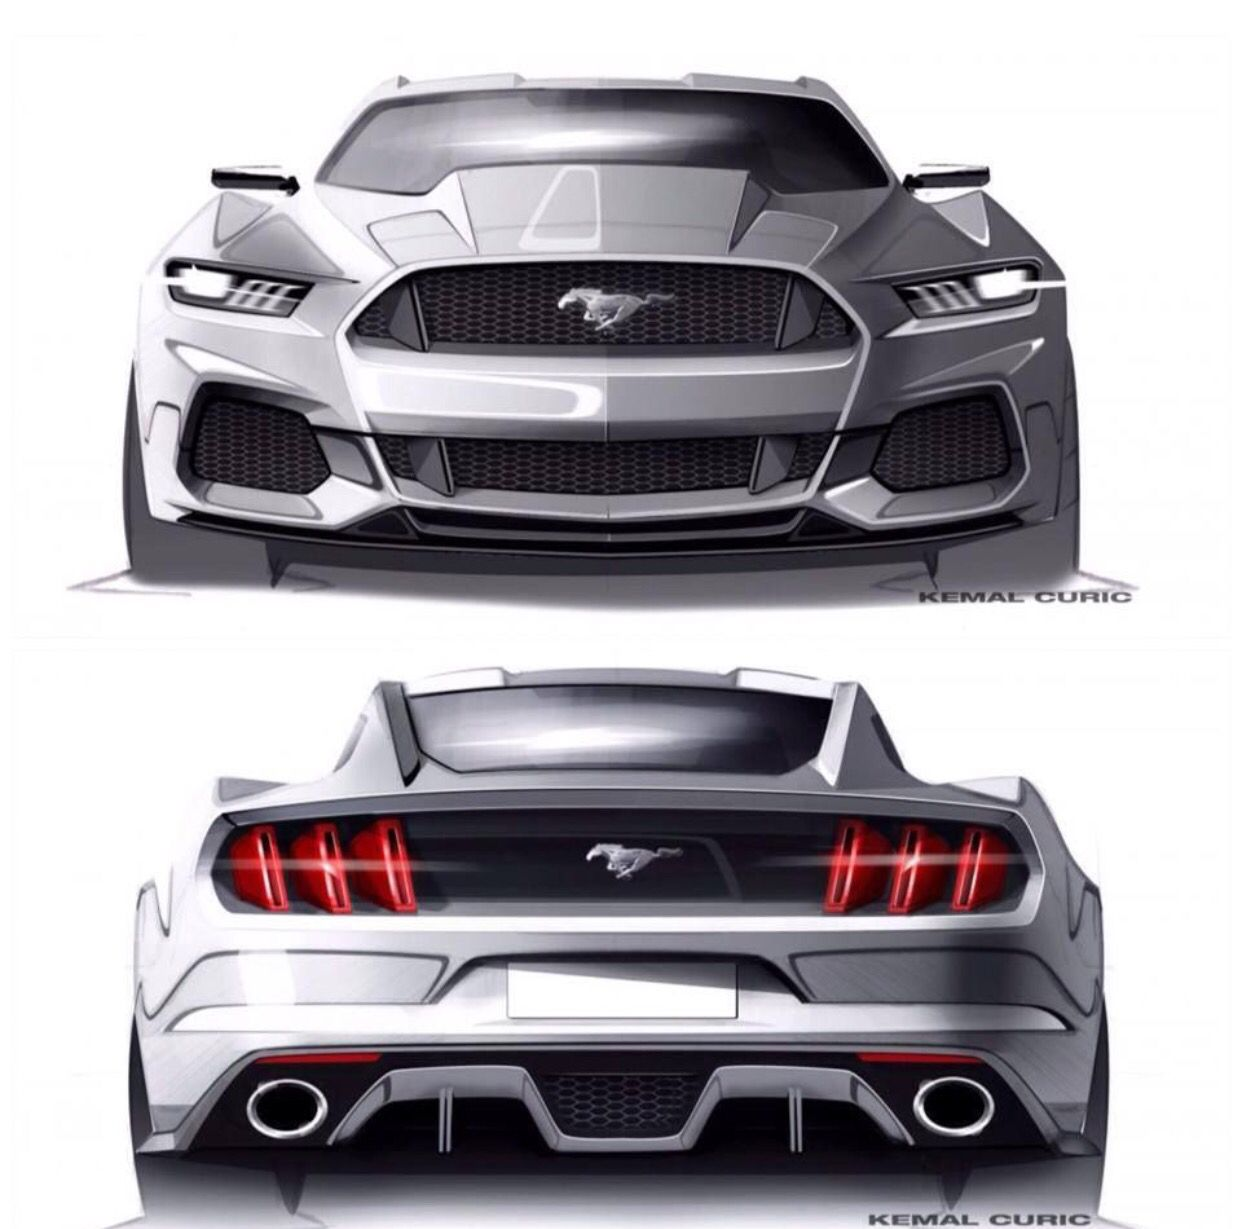 The 25 best future ford ideas on pinterest ford diesel trucks f350 ford and lifted trucks